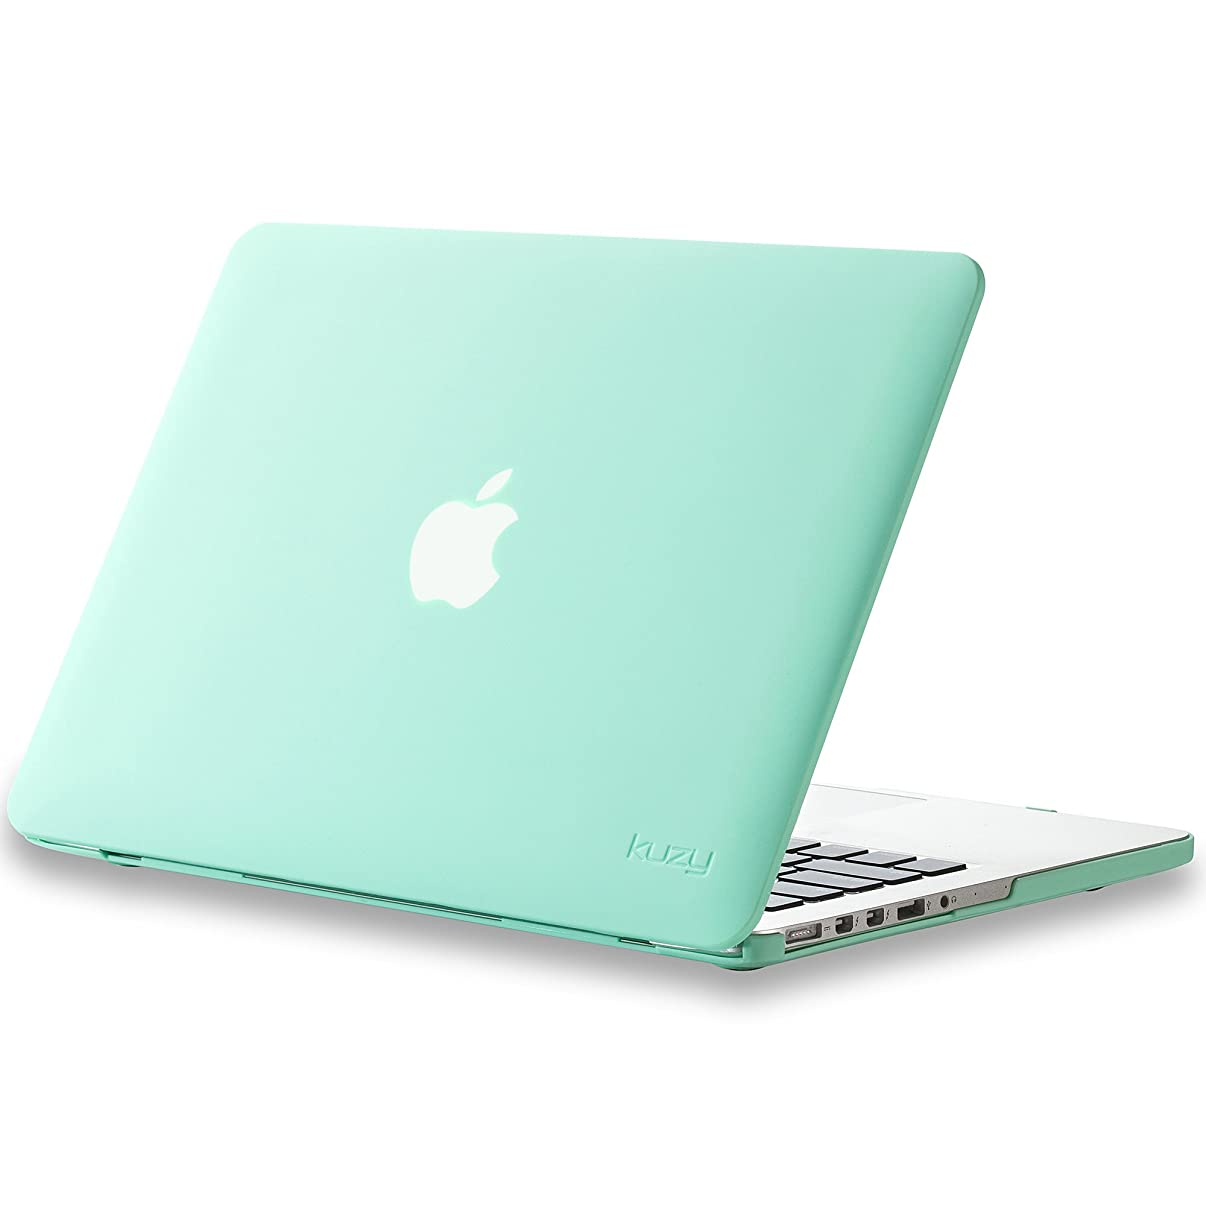 Kuzy - Older Version MacBook Pro 13.3 inch Case (Release 2015-2012) Soft Touch Cover for Model A1502 / A1425 with Retina Display Hard Shell Plastic - Mint Green